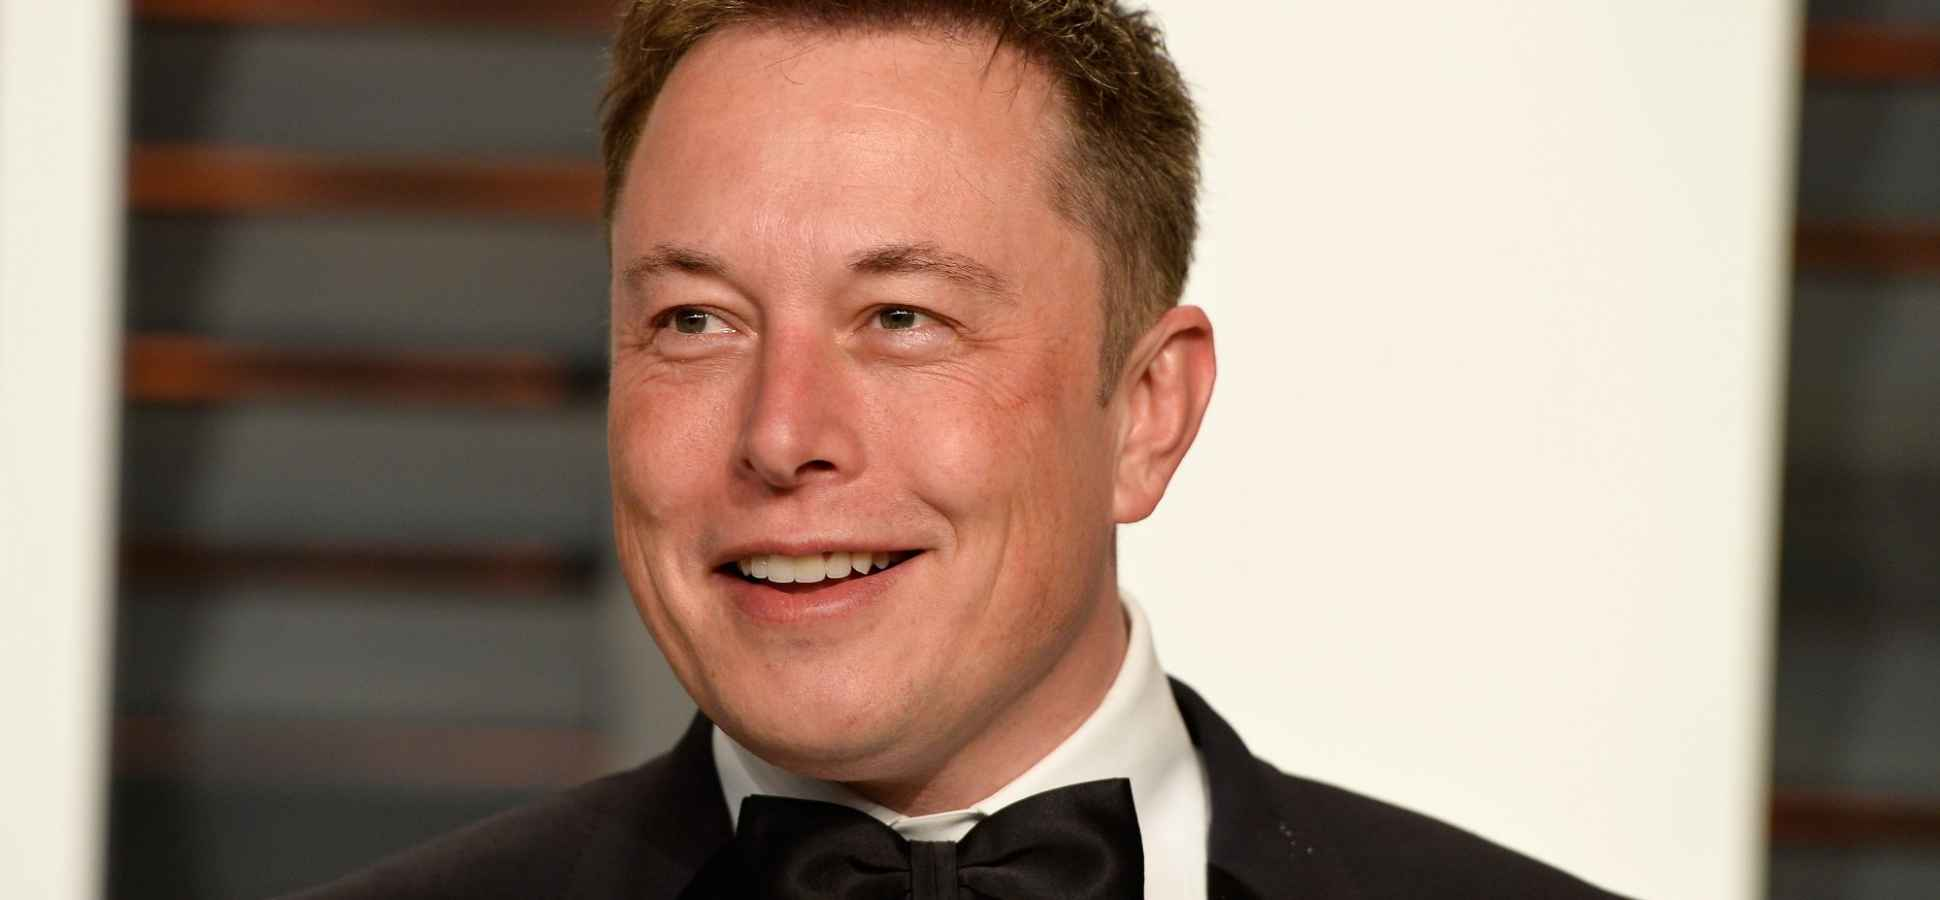 Elon Musk Says Tesla Is About to Overhaul Transportation With an Electric Semi-Trailer